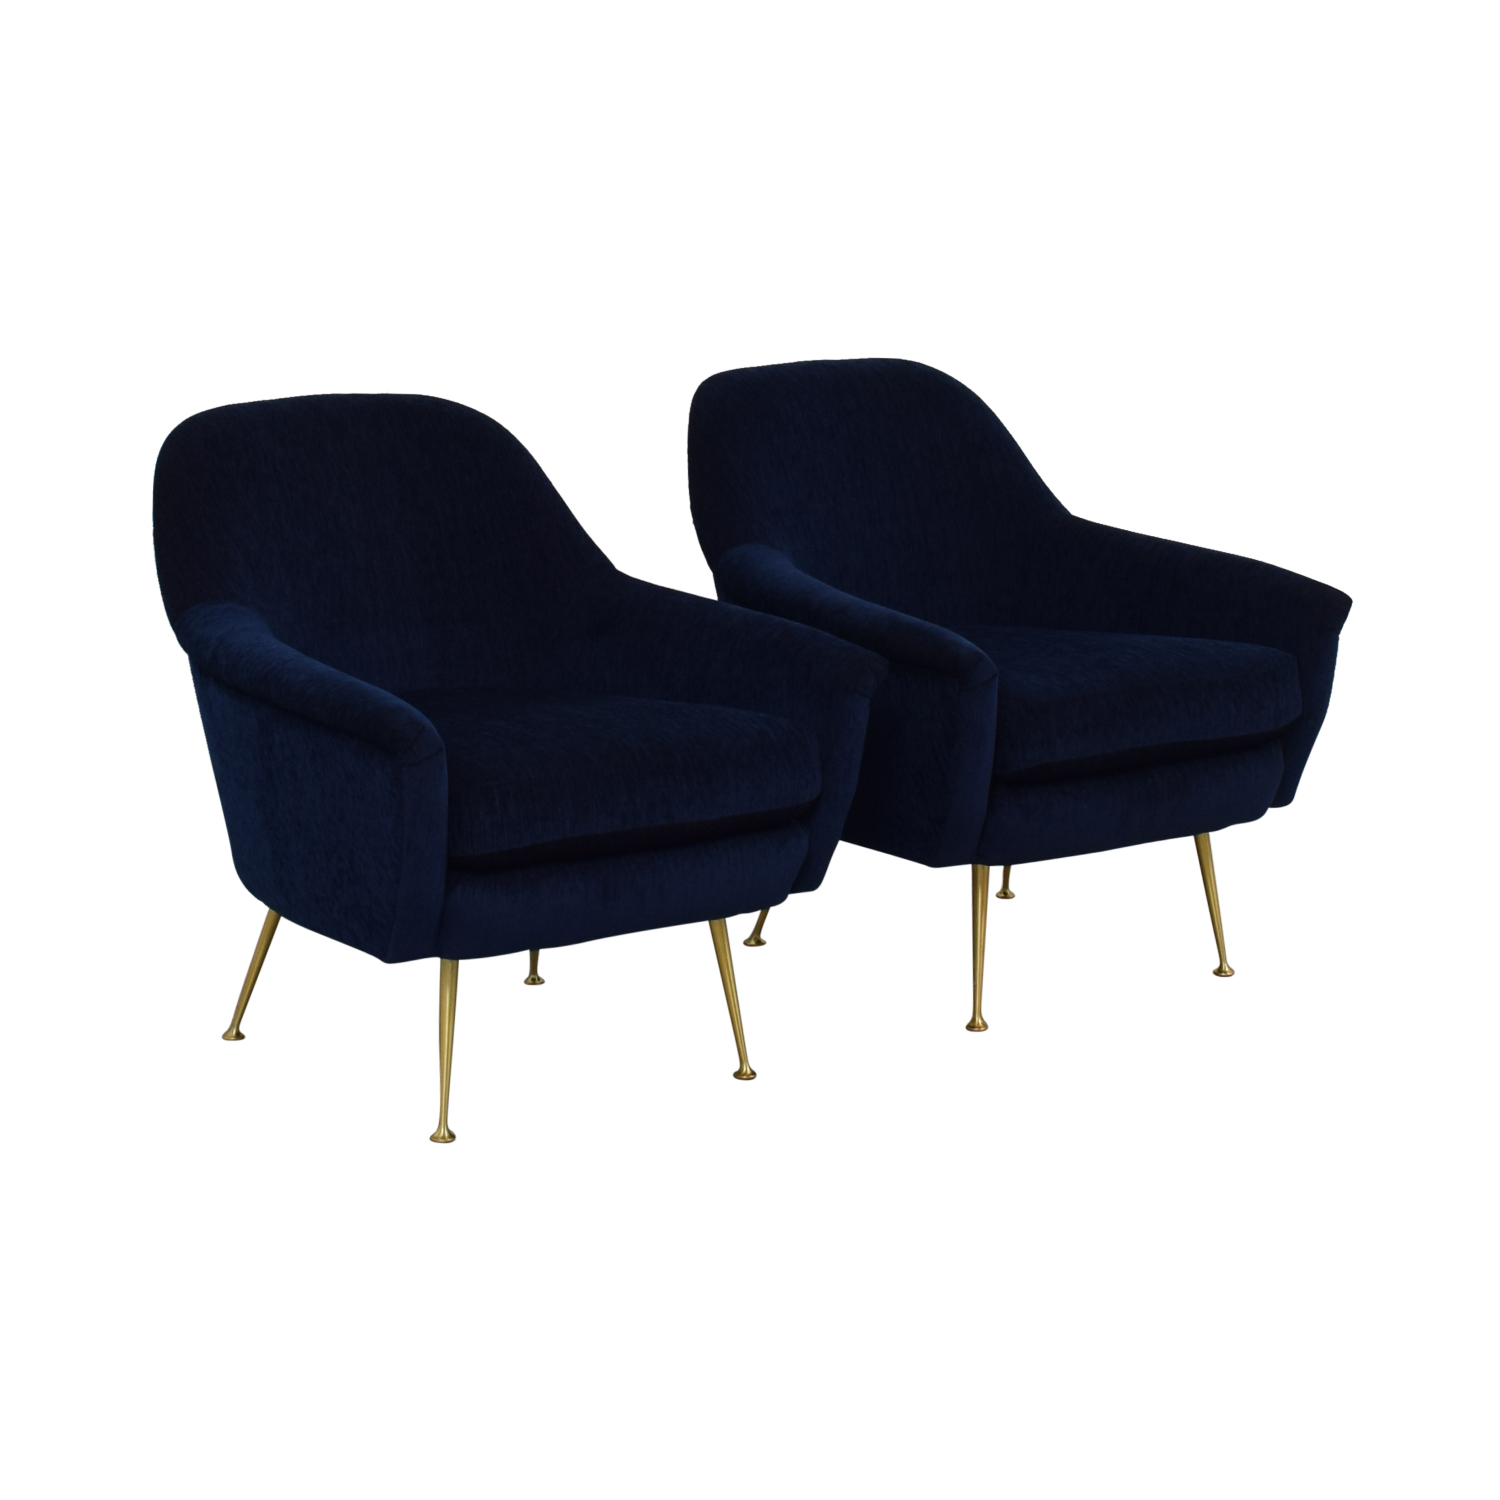 West Elm Phoebe Chairs / Chairs